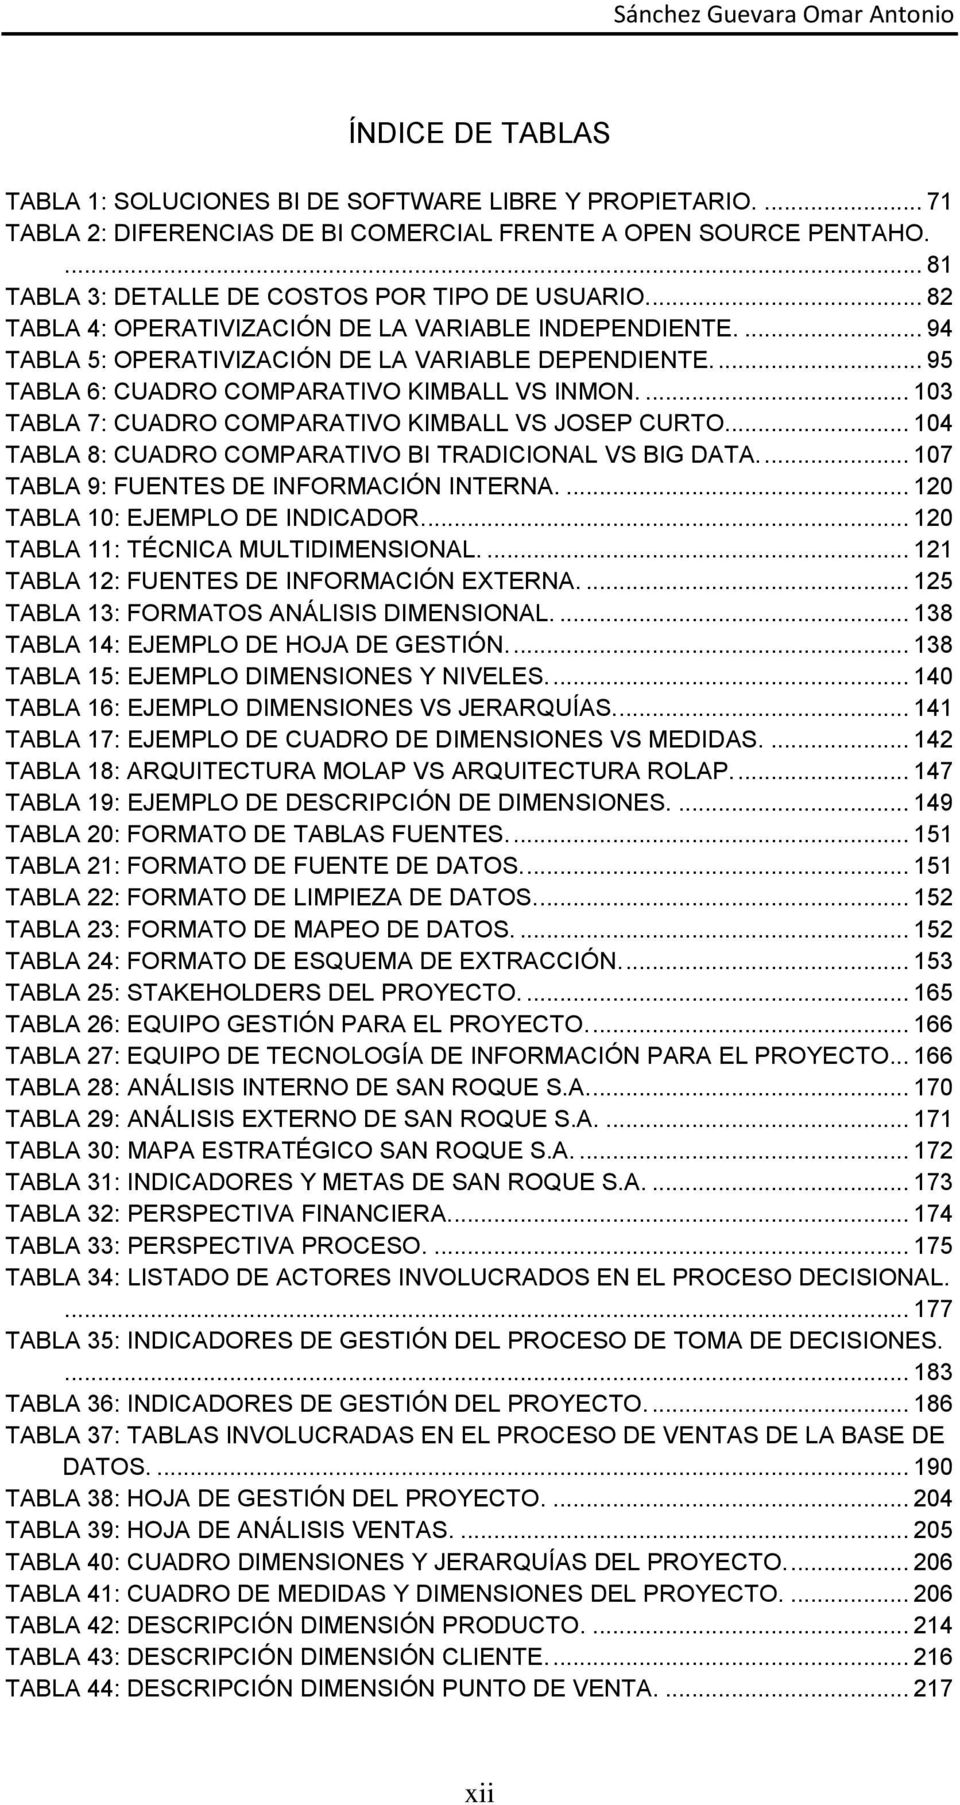 ... 103 TABLA 7: CUADRO COMPARATIVO KIMBALL VS JOSEP CURTO... 104 TABLA 8: CUADRO COMPARATIVO BI TRADICIONAL VS BIG DATA.... 107 TABLA 9: FUENTES DE INFORMACIÓN INTERNA.